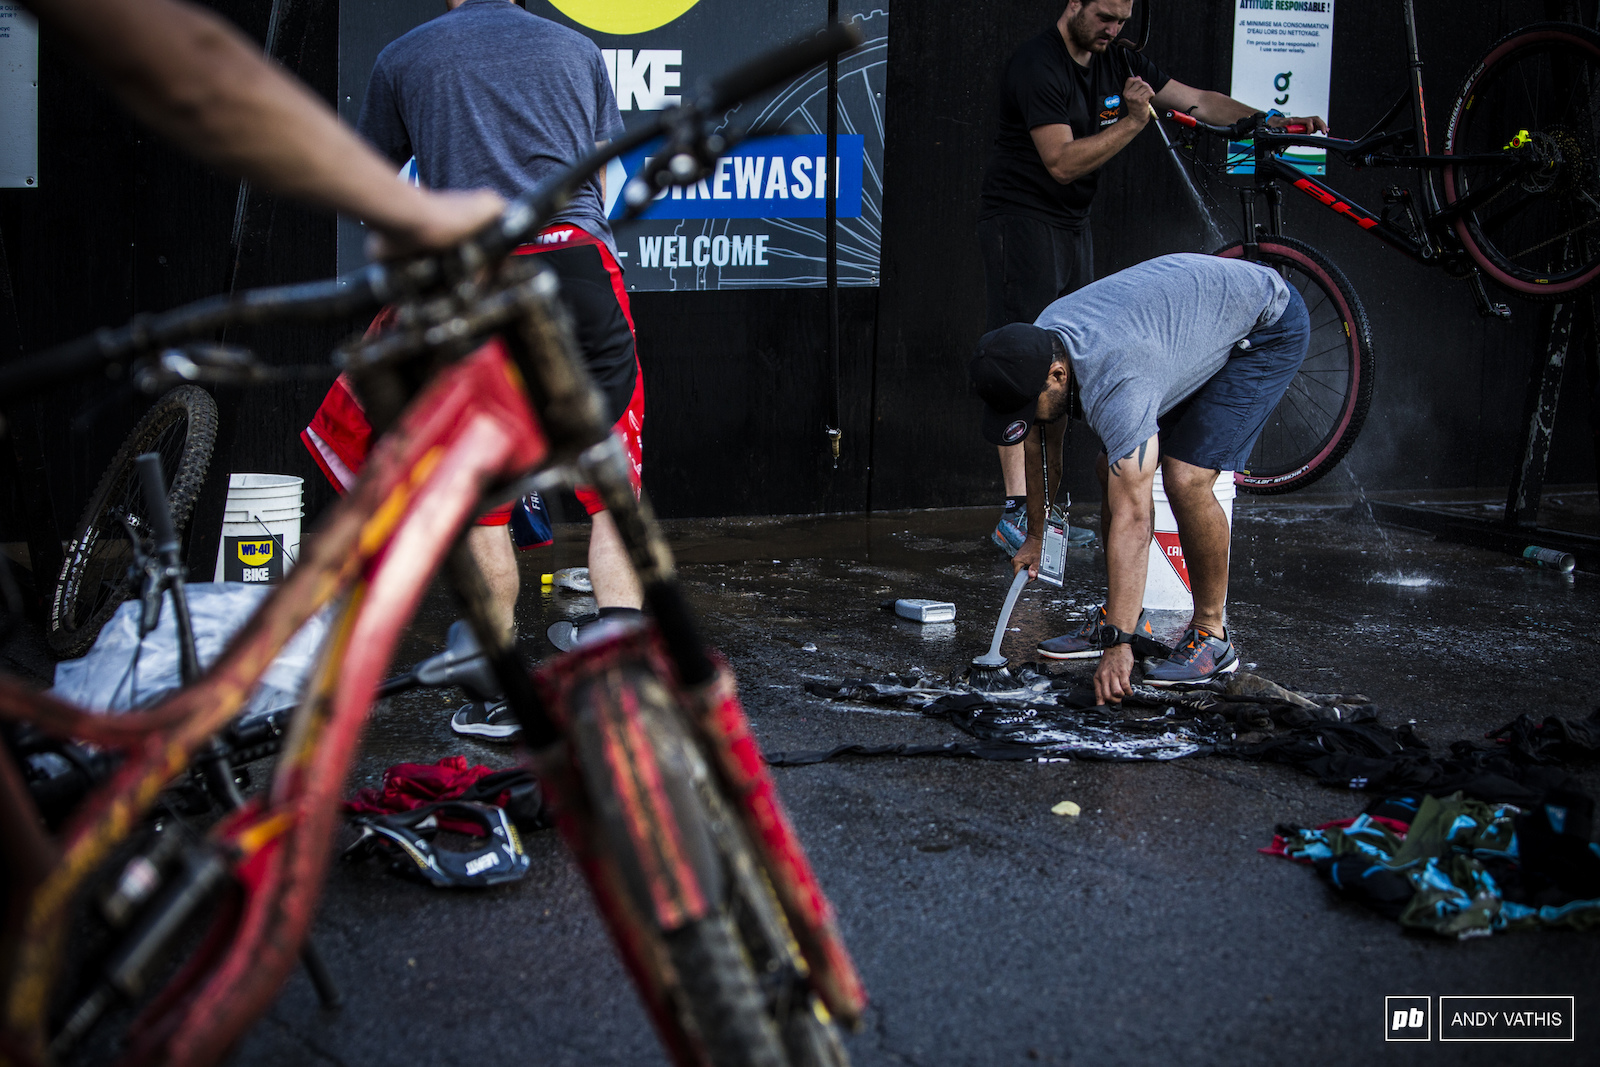 The bike wash was overworked and overbooked all day.